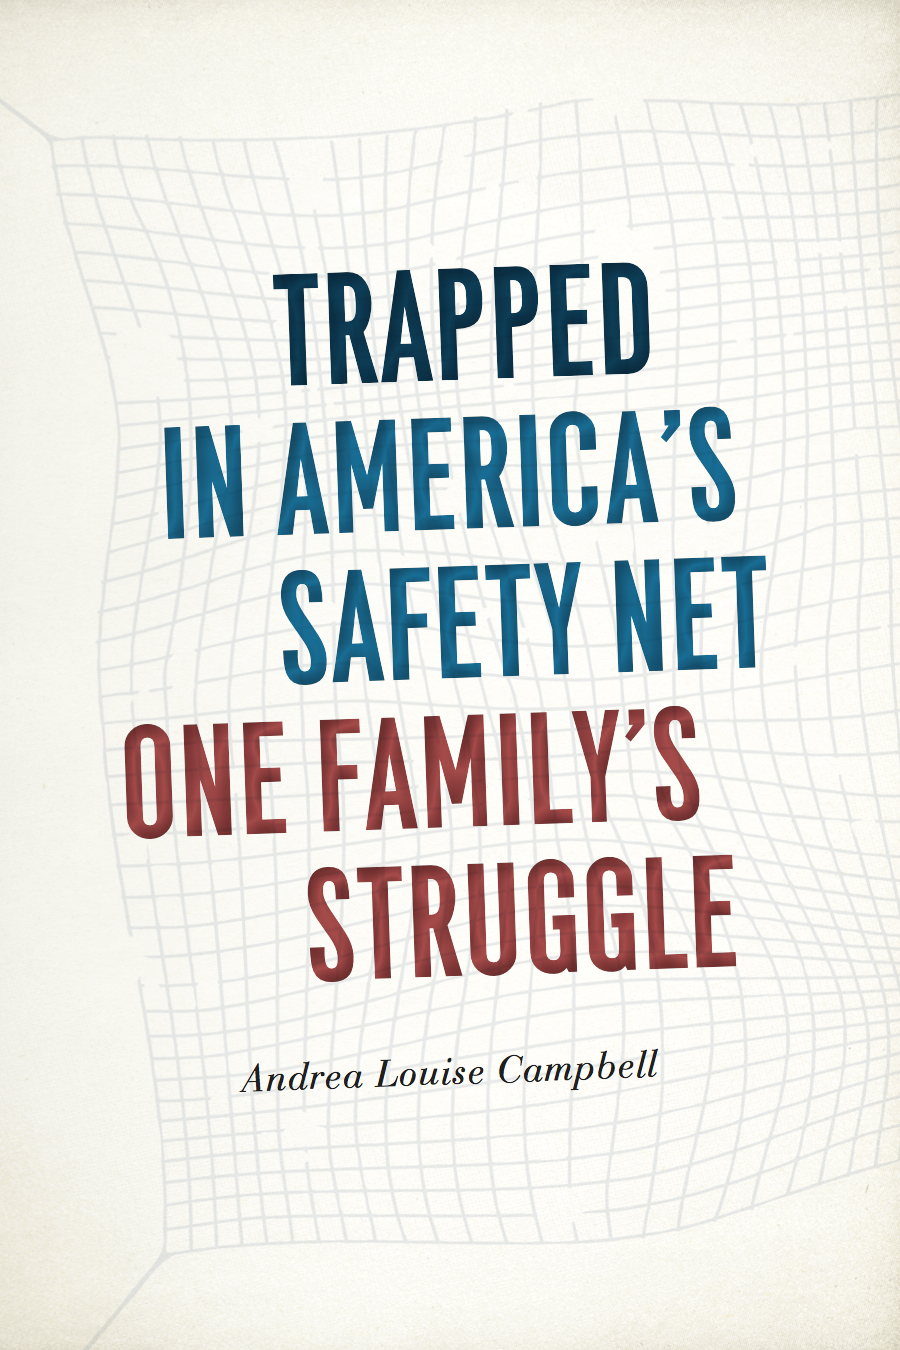 Trapped in America's Safety Net